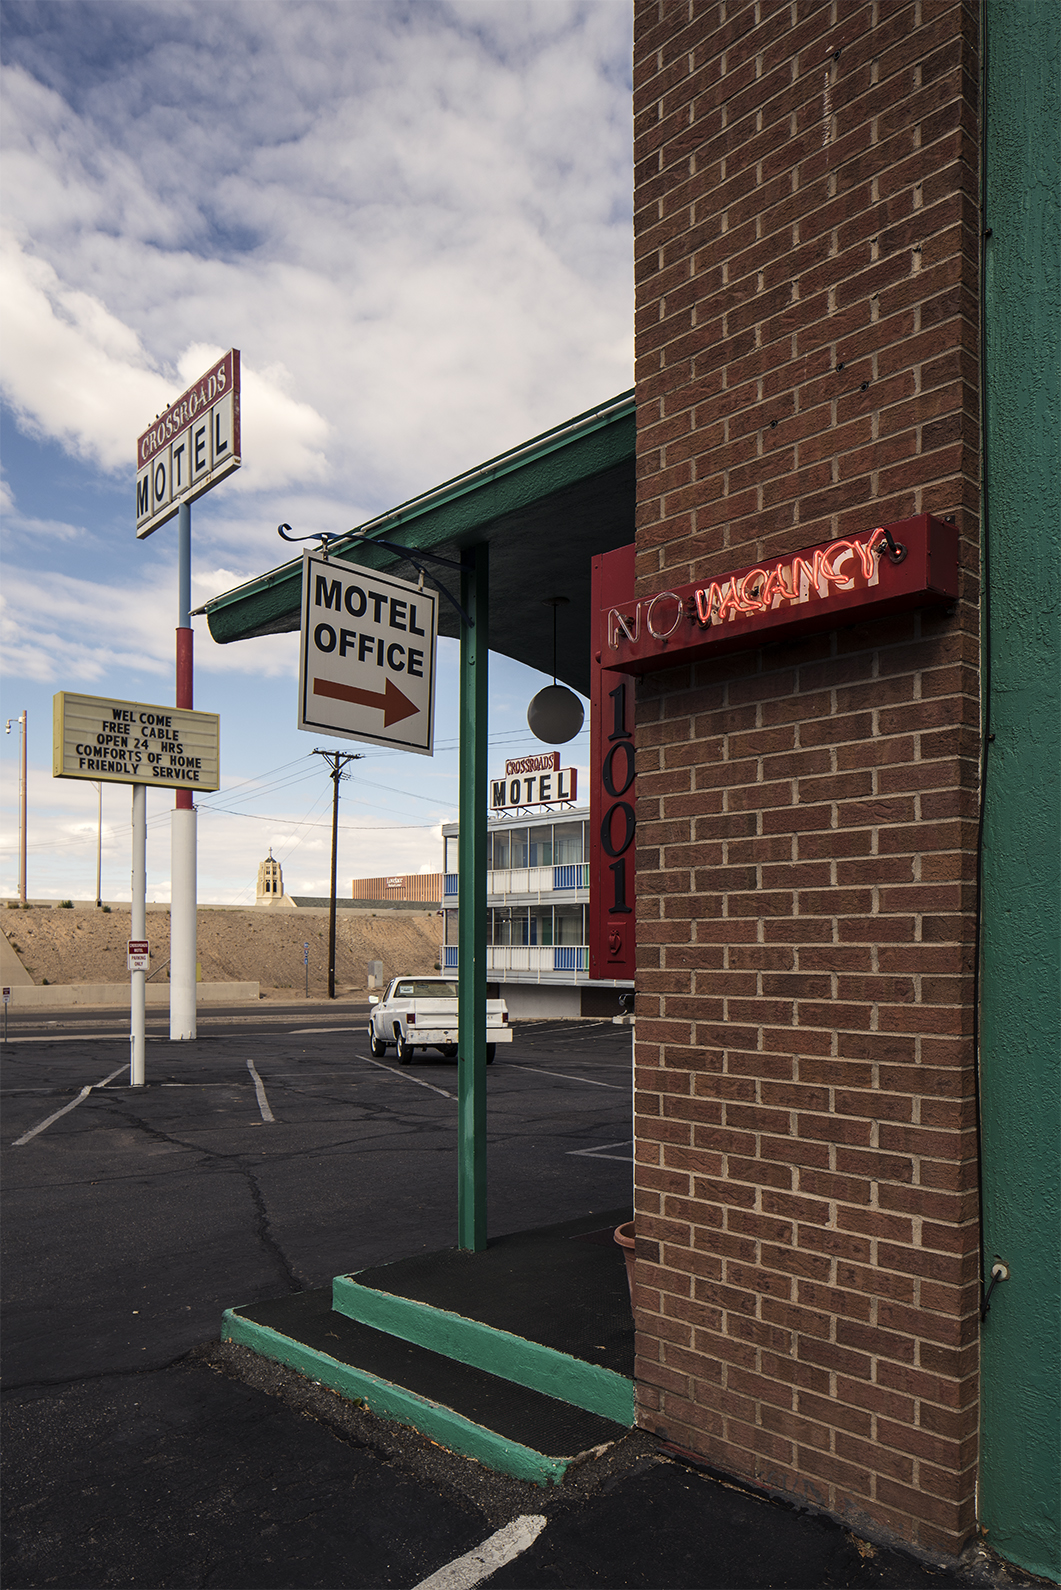 Breaking Bad, Crystal Palace, Color, Photograph, Crossroads Motel, Albuquerque, New Mexico, October 24, 2015